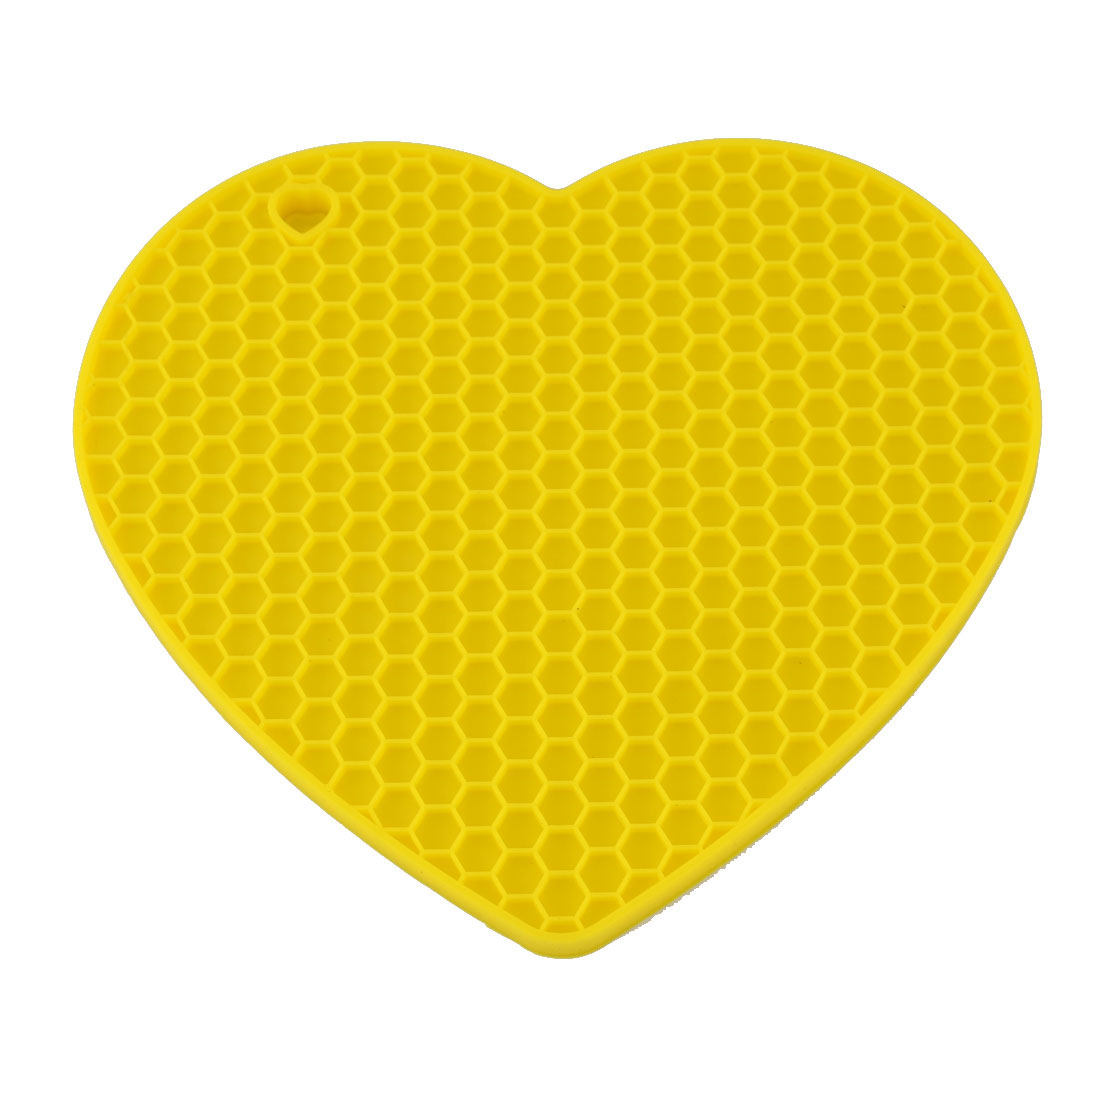 Silicone Heart Shaped Honeycomb Pattern Heat Insulation Pot Table Mat Pad Yellow